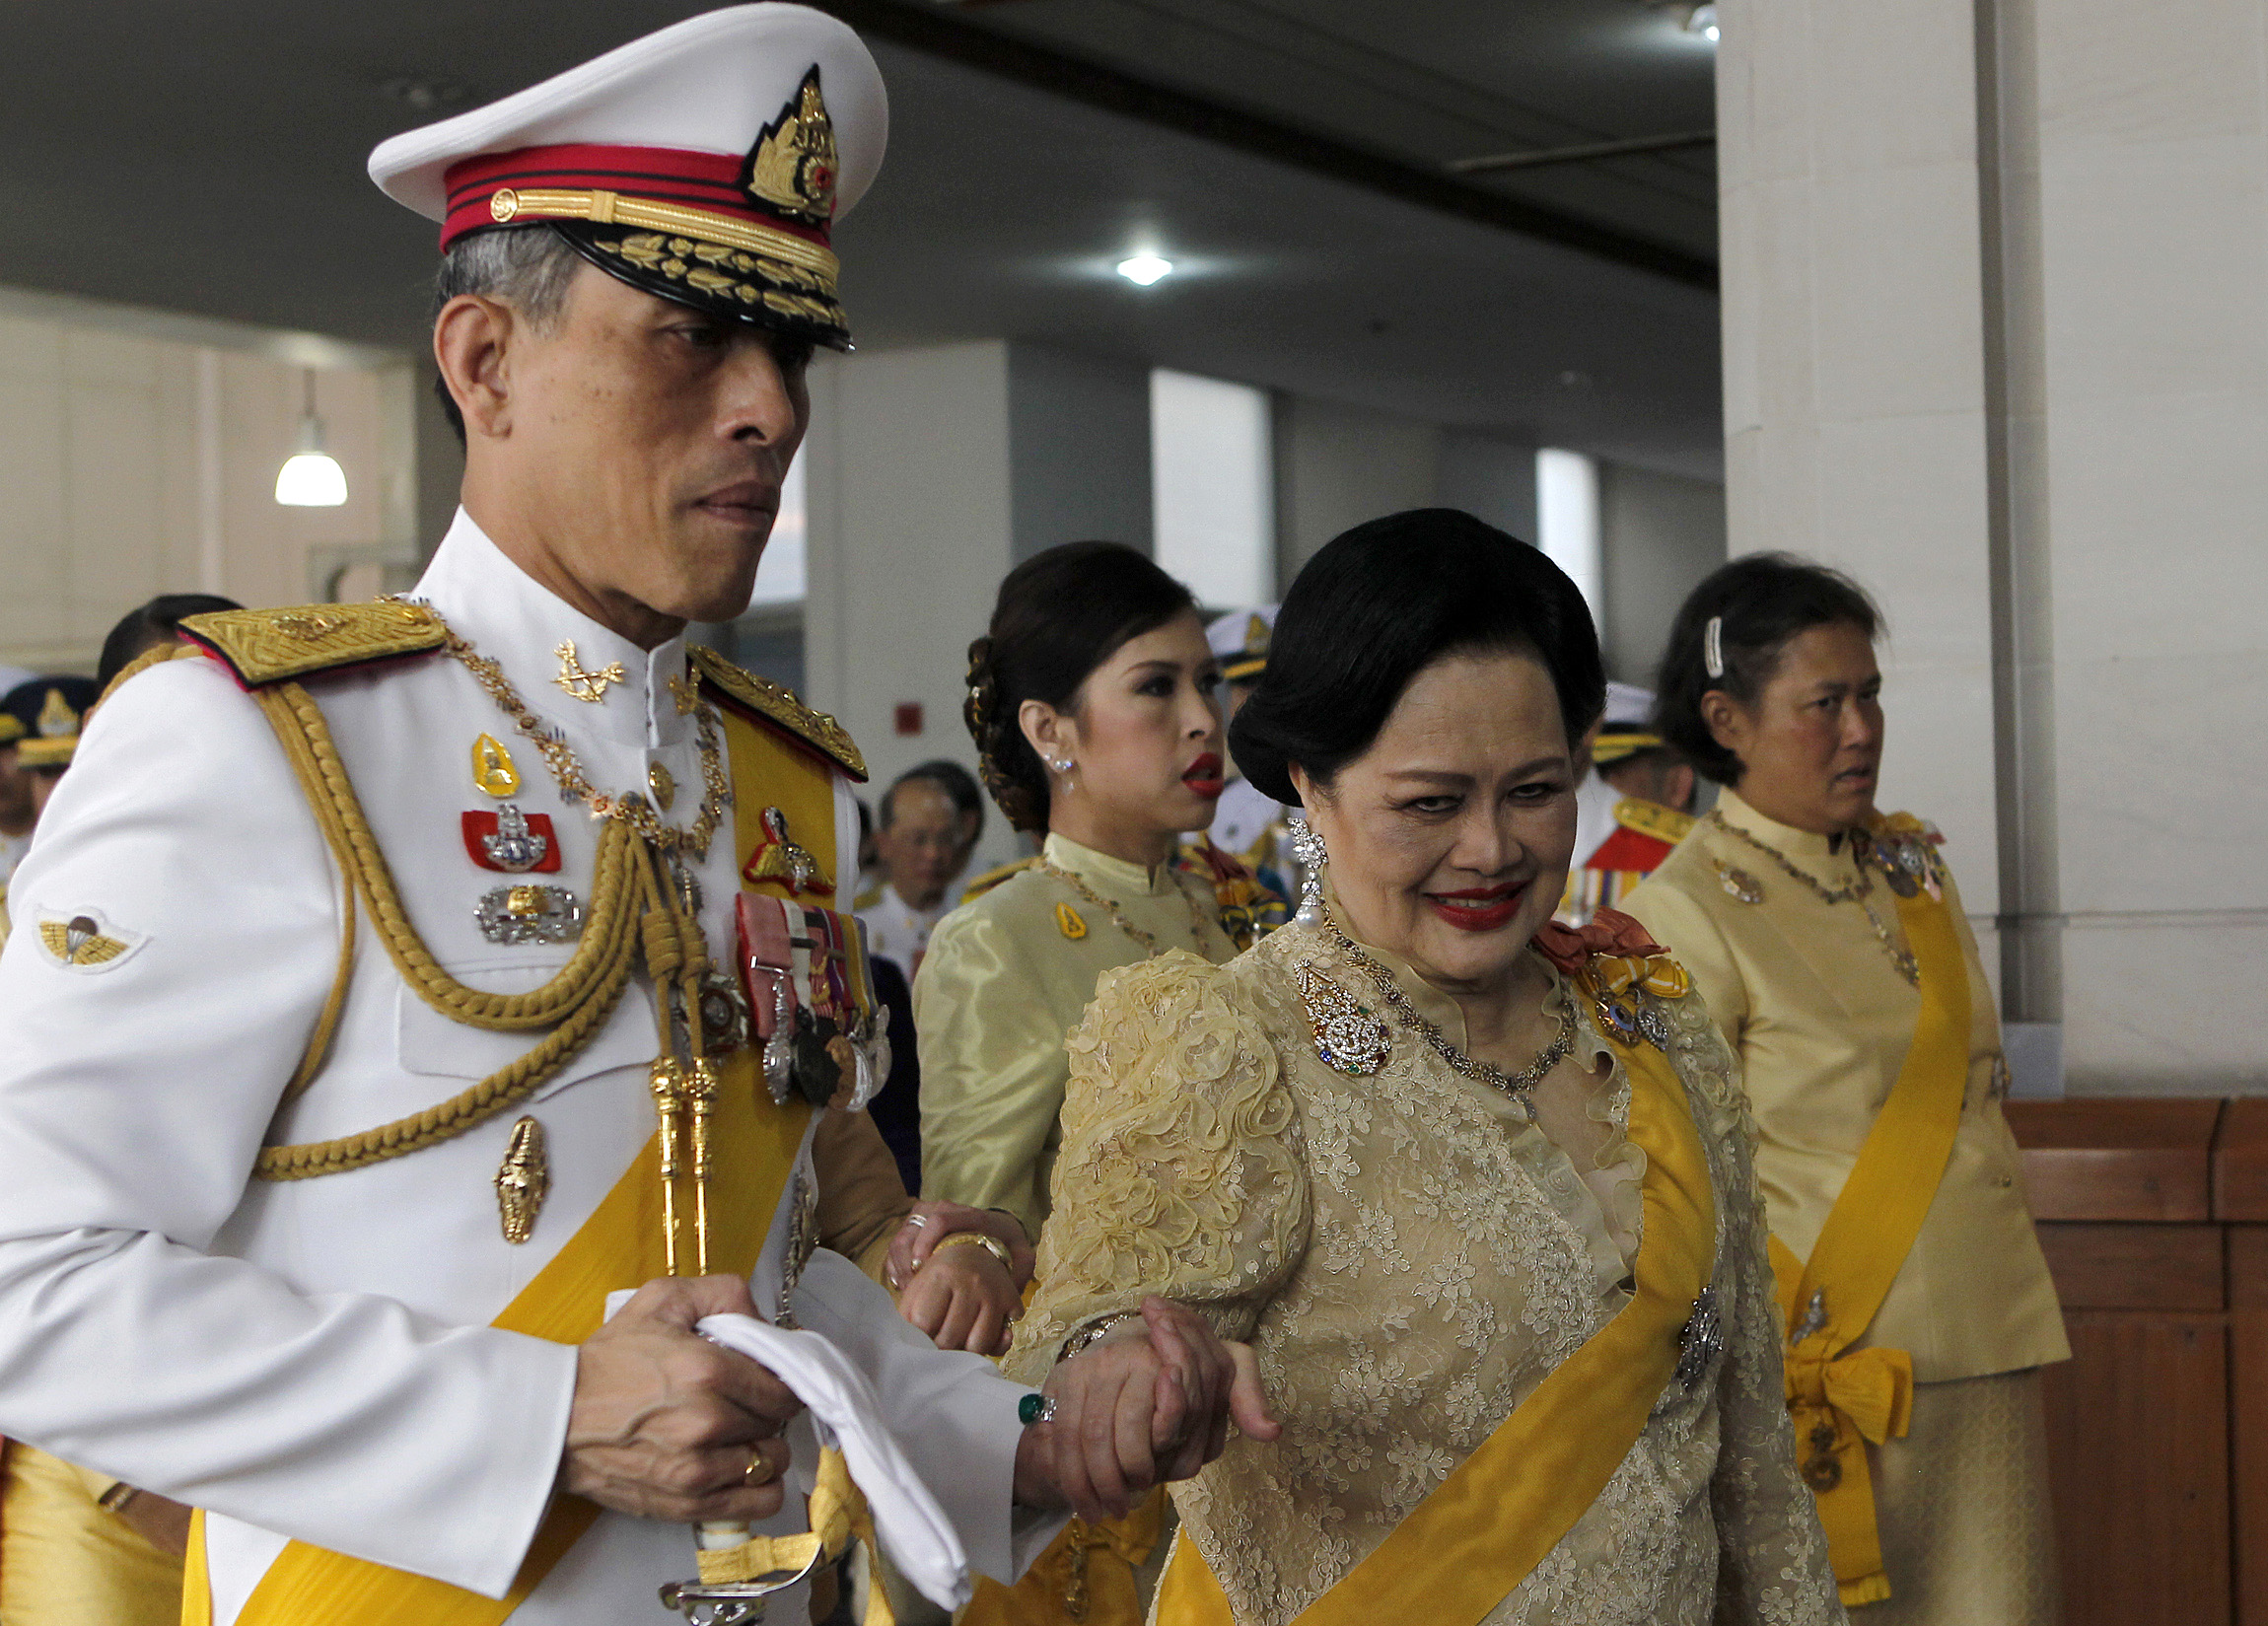 Thailand's royal family follows King Bhumibol Adulyadej as he returns to Siriraj Hospital in Bangkok